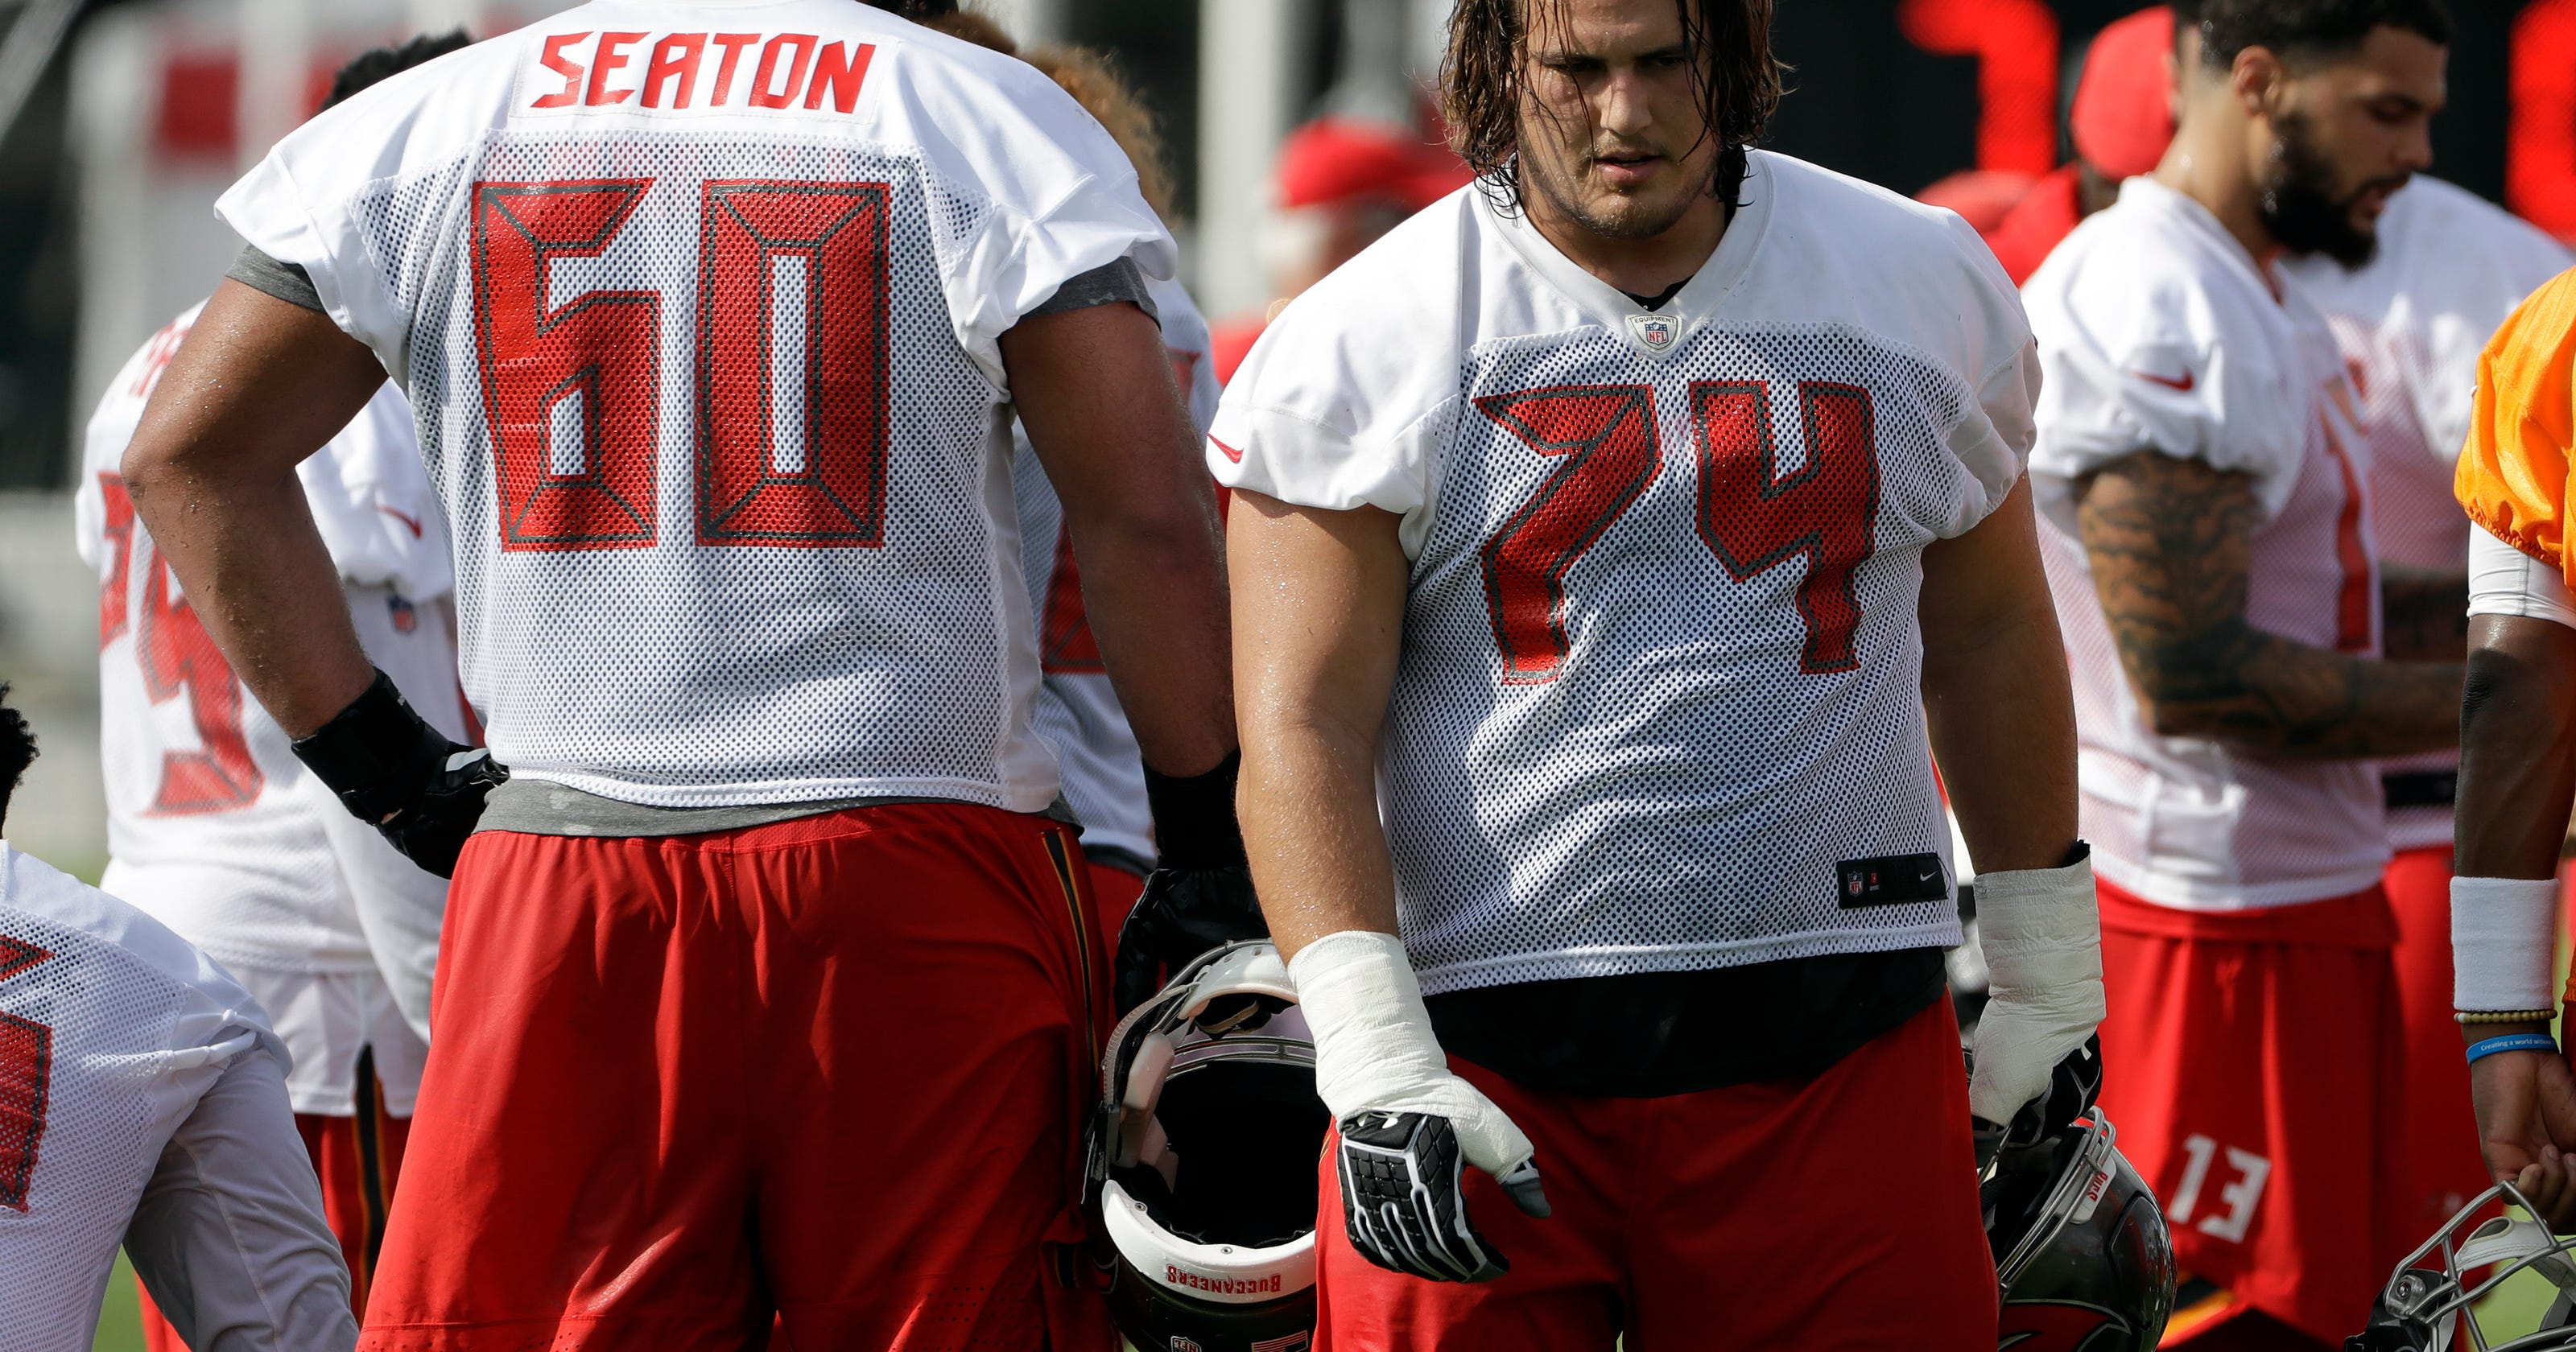 separation shoes fc8e0 31e78 NFL: Hastings native Ali Marpet signs $55M extension with Bucs